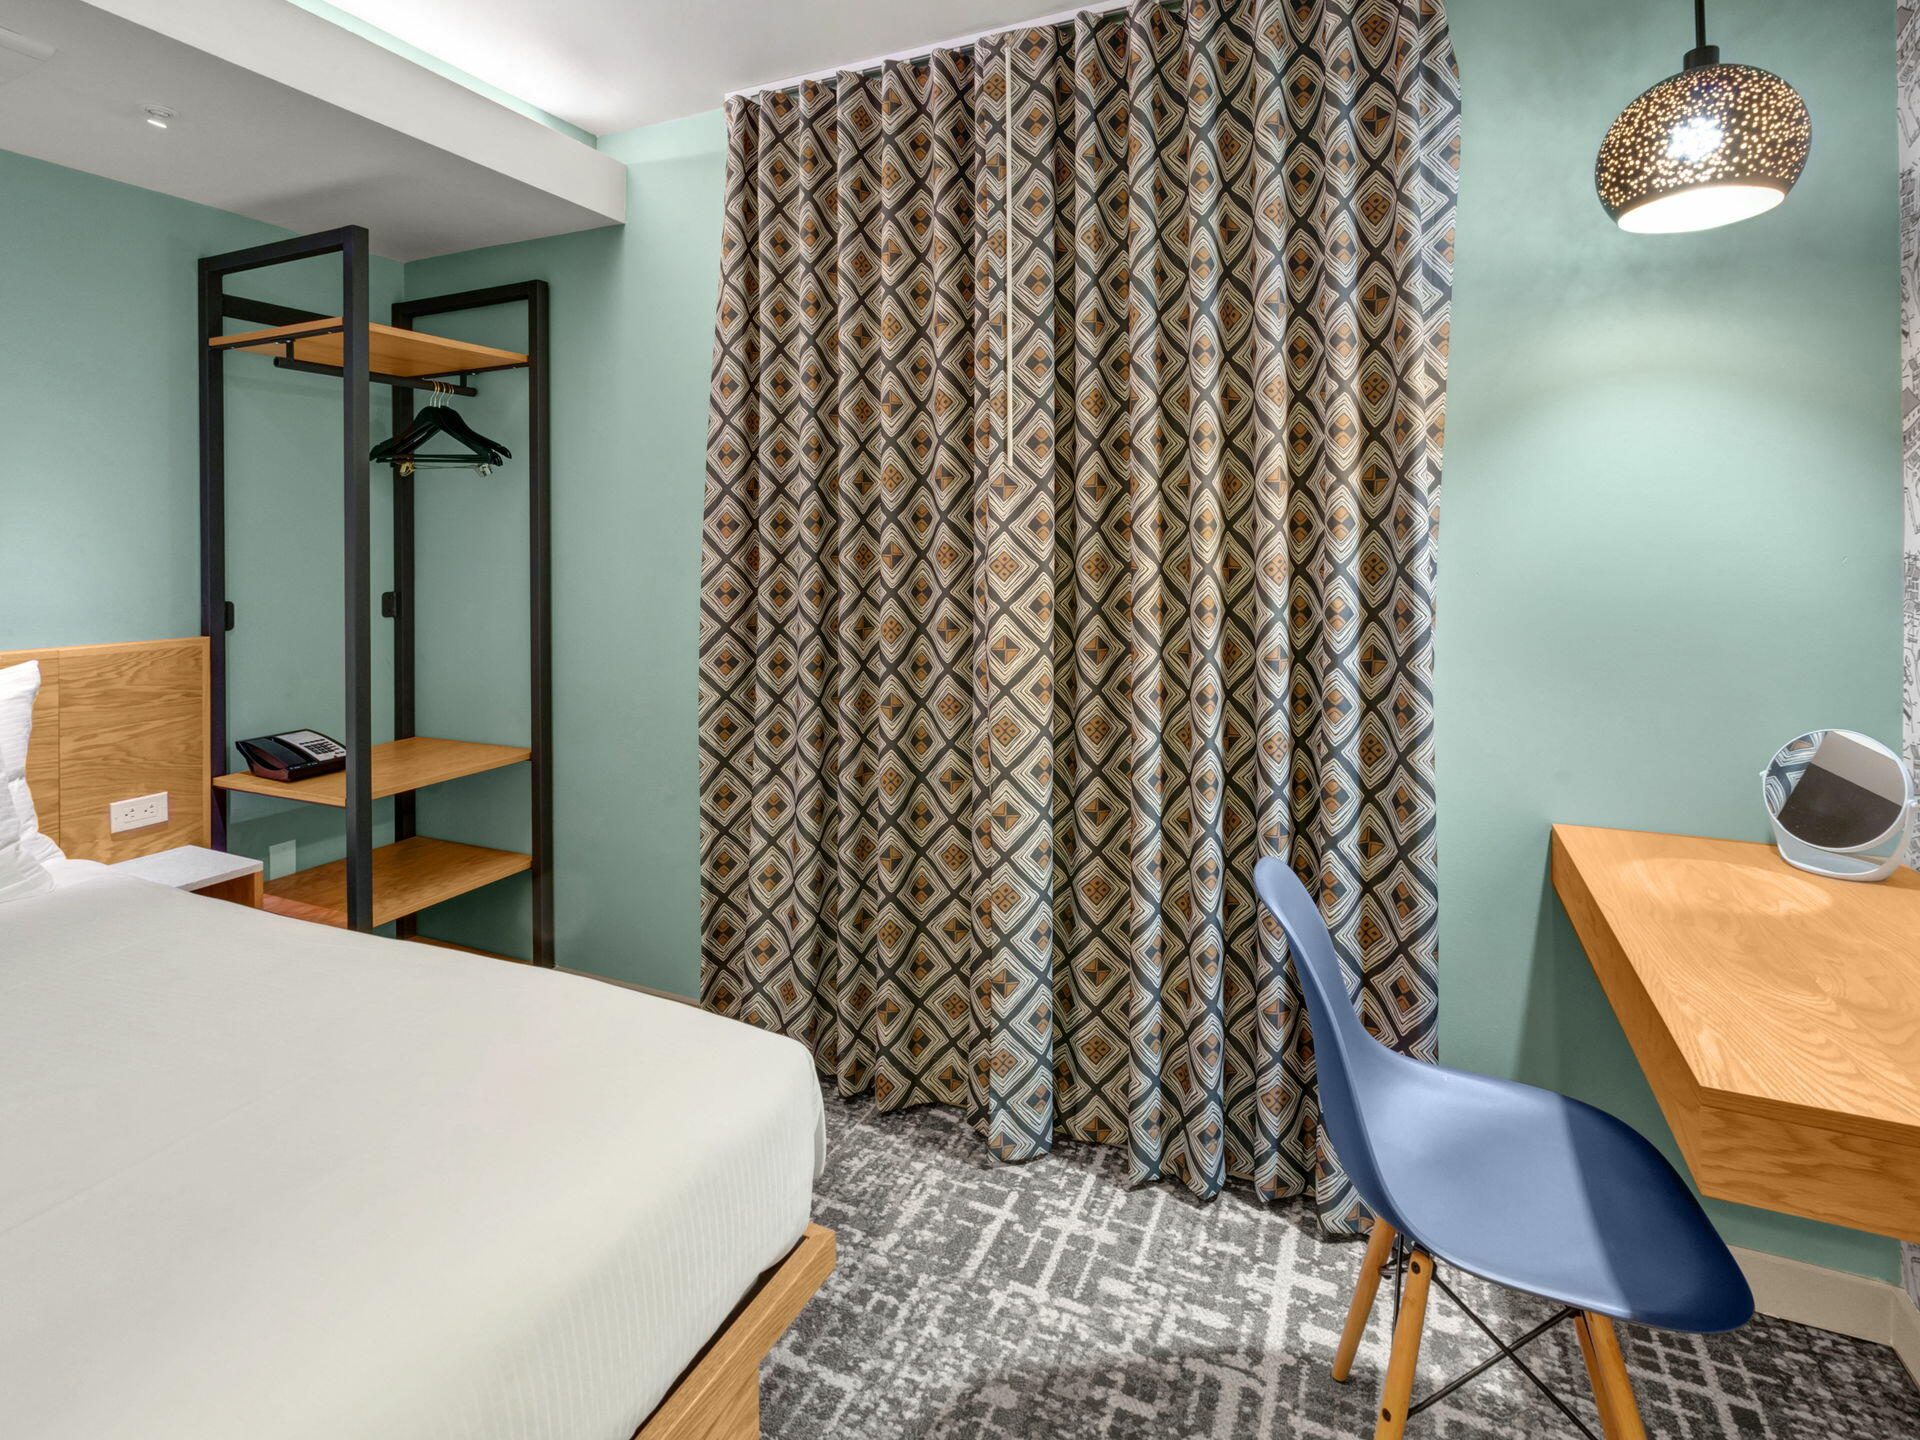 hotel keen guest room with desk, closet organizet and bed